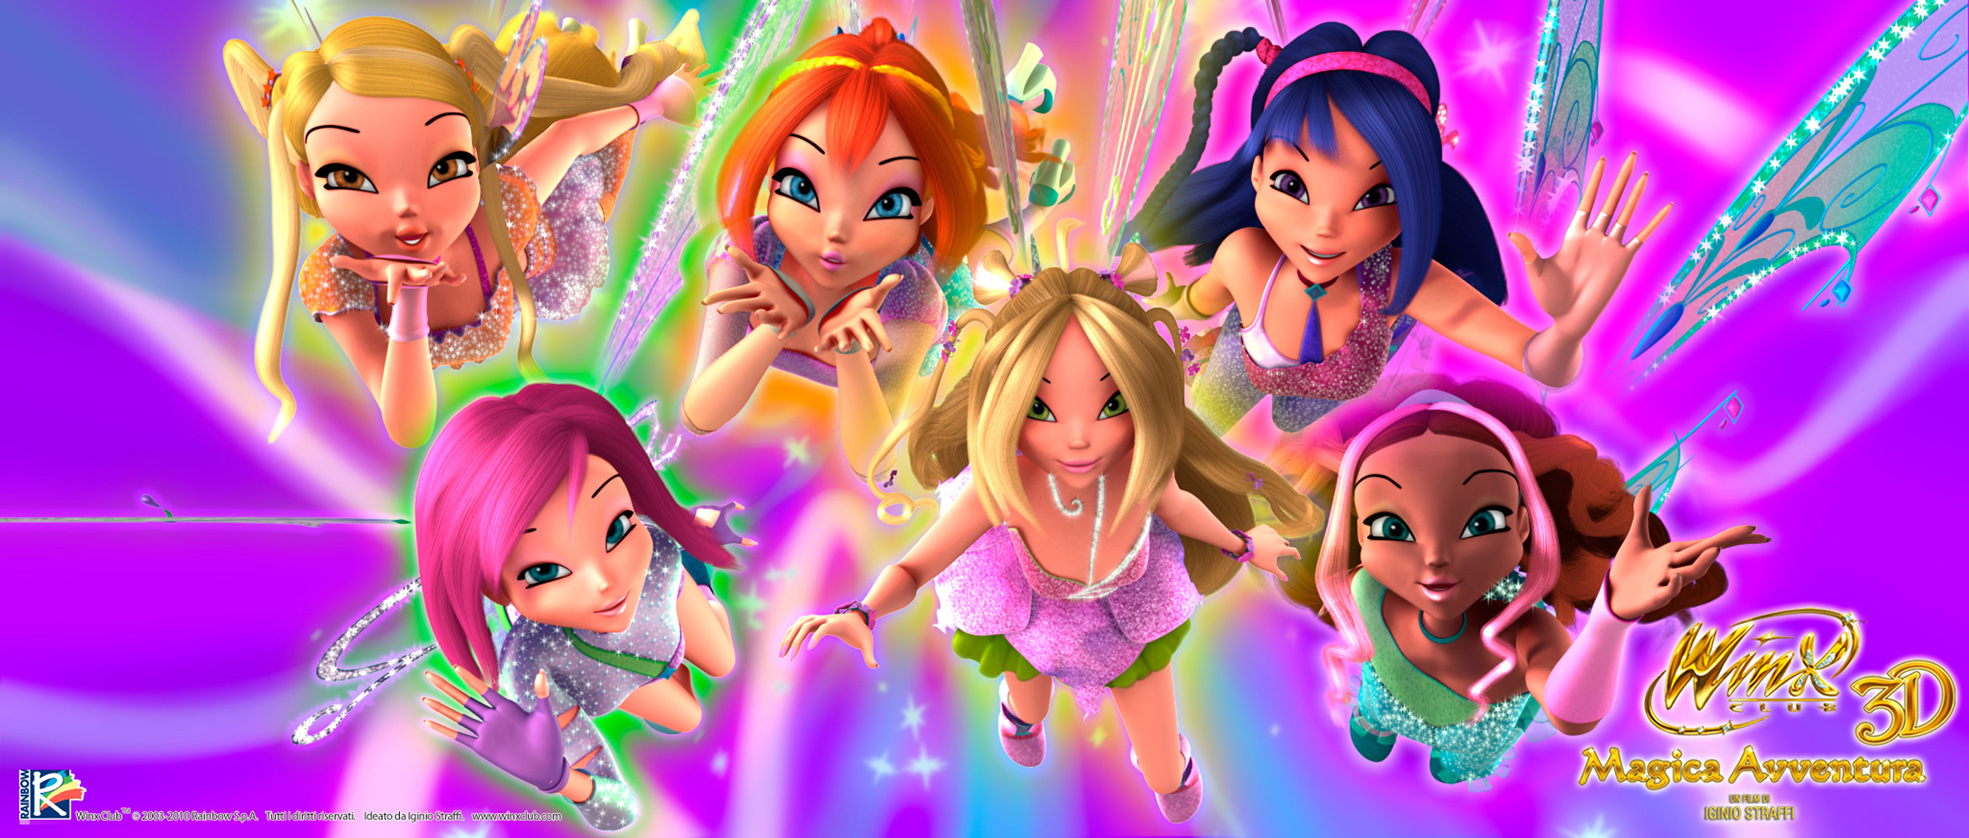 animated-winx-image-0240